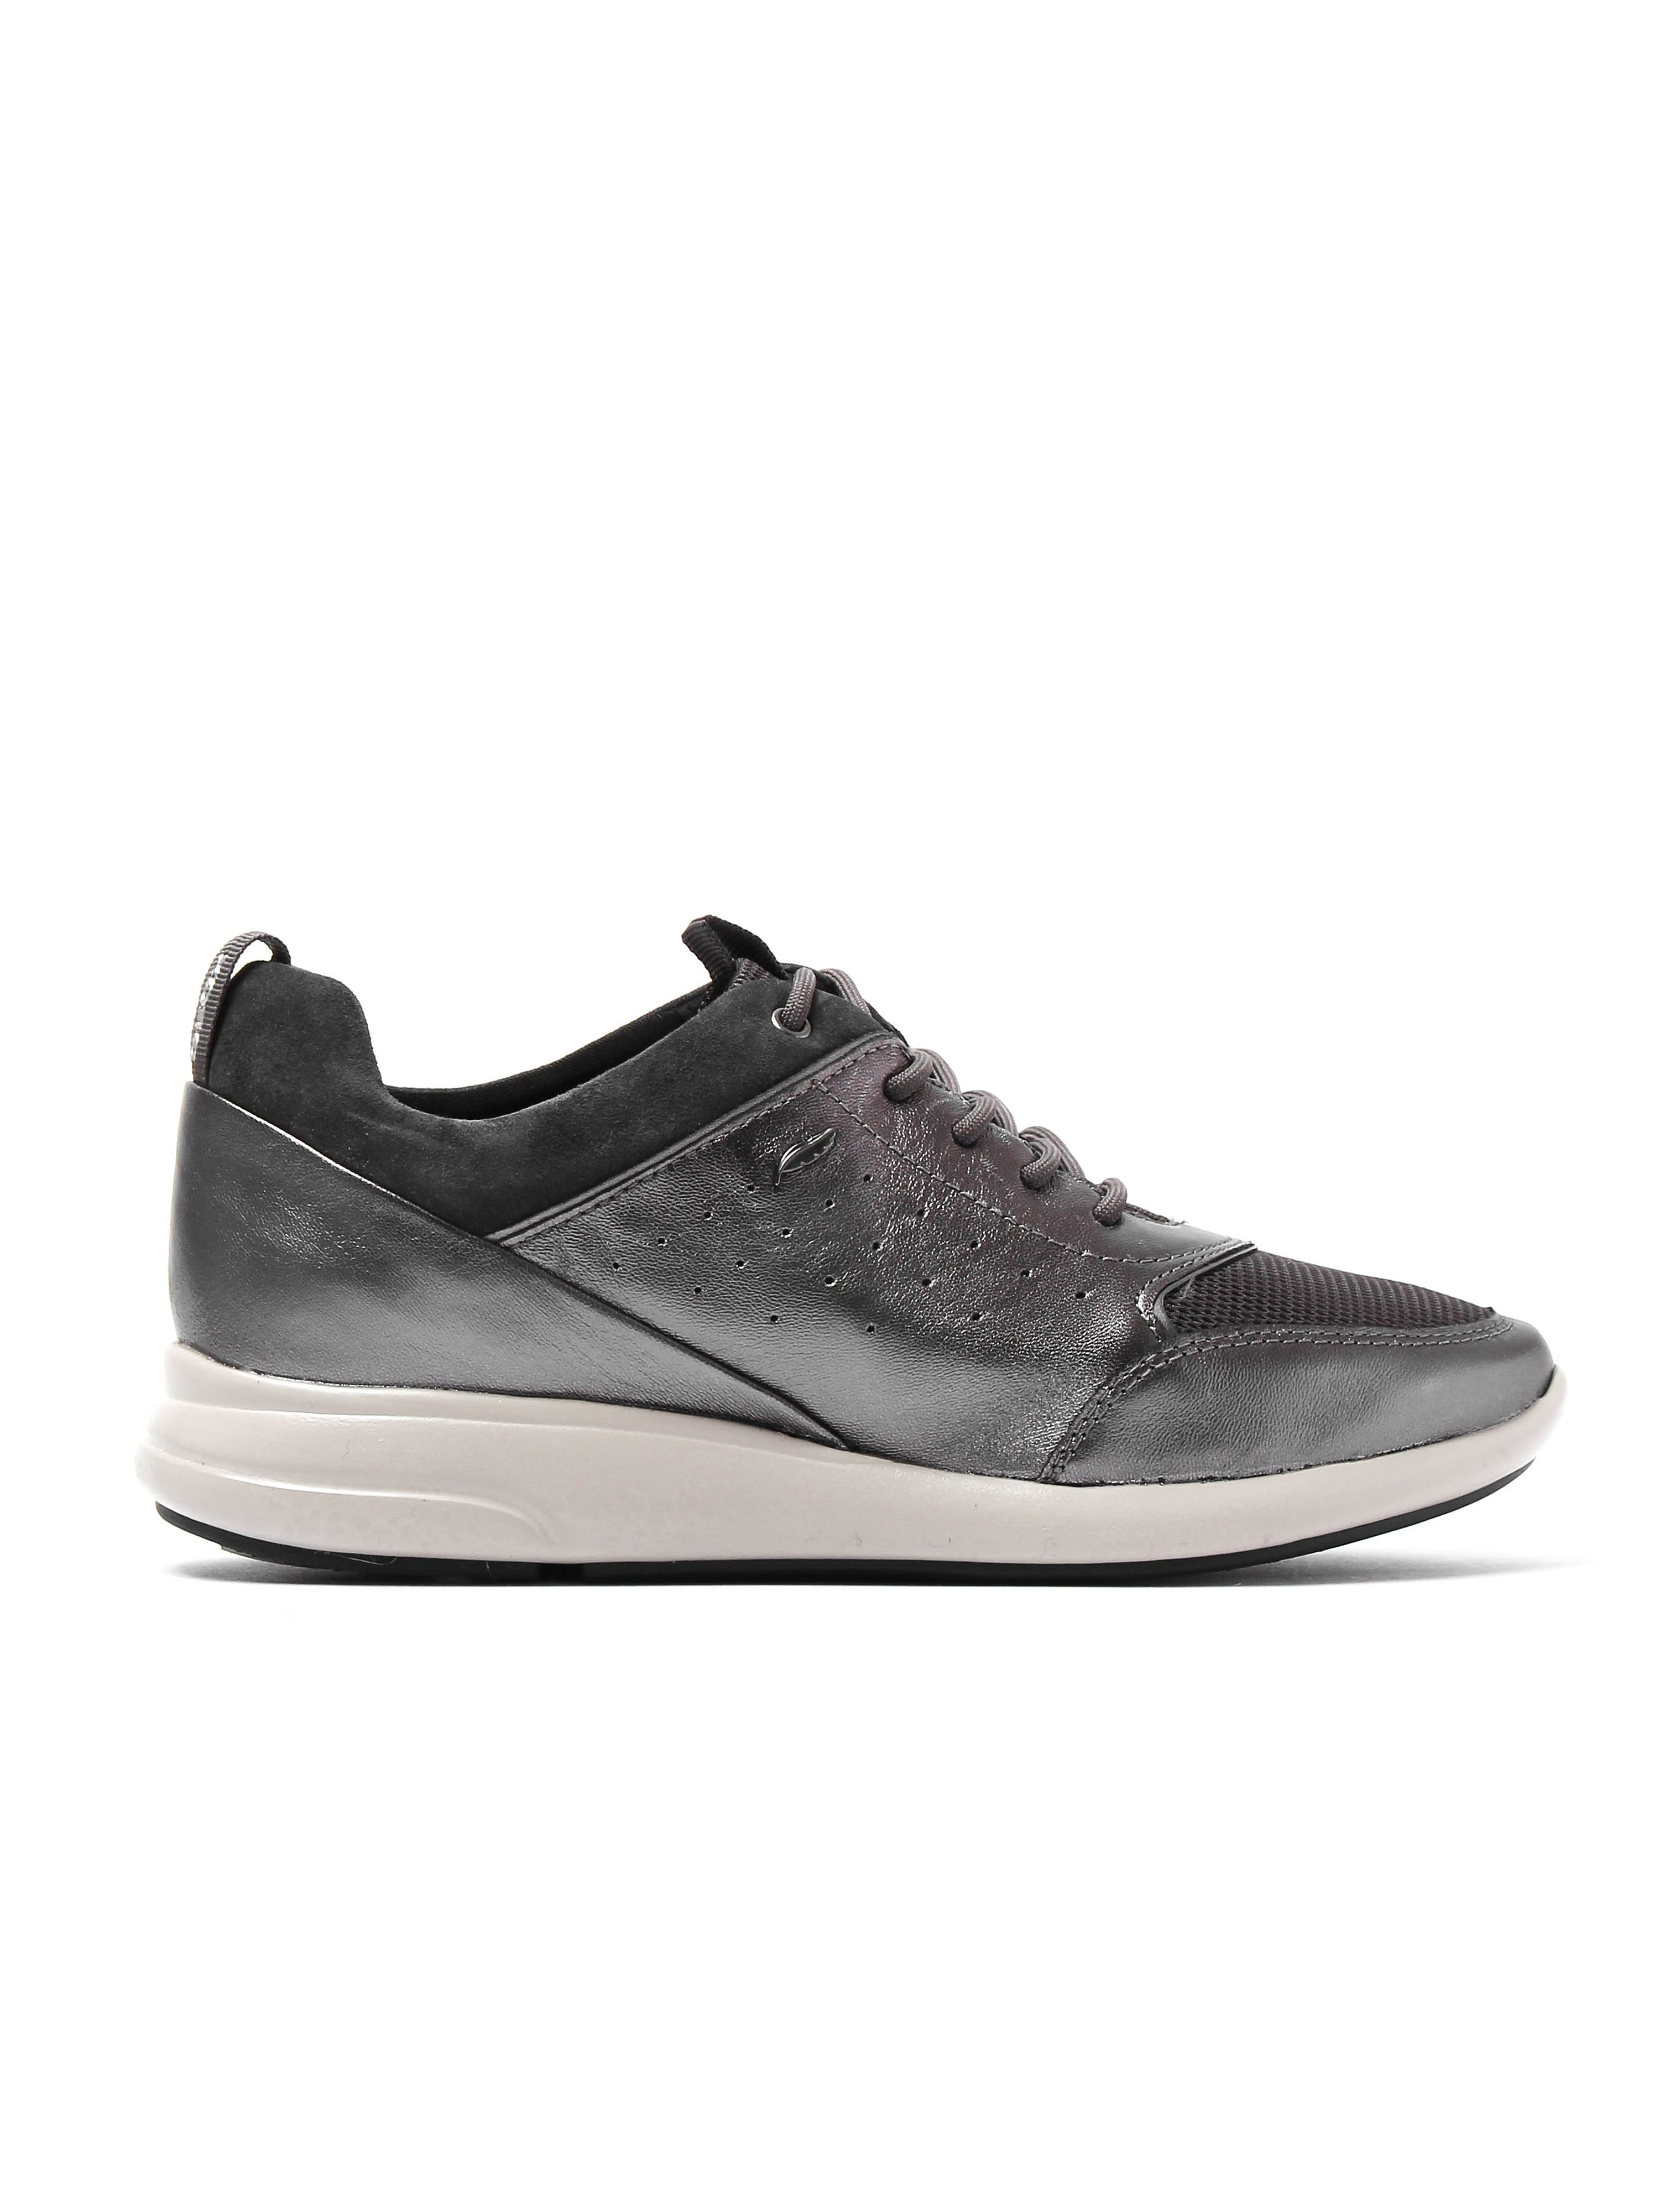 Geox Women's D Ophira Trainers - Gun Metal Leather